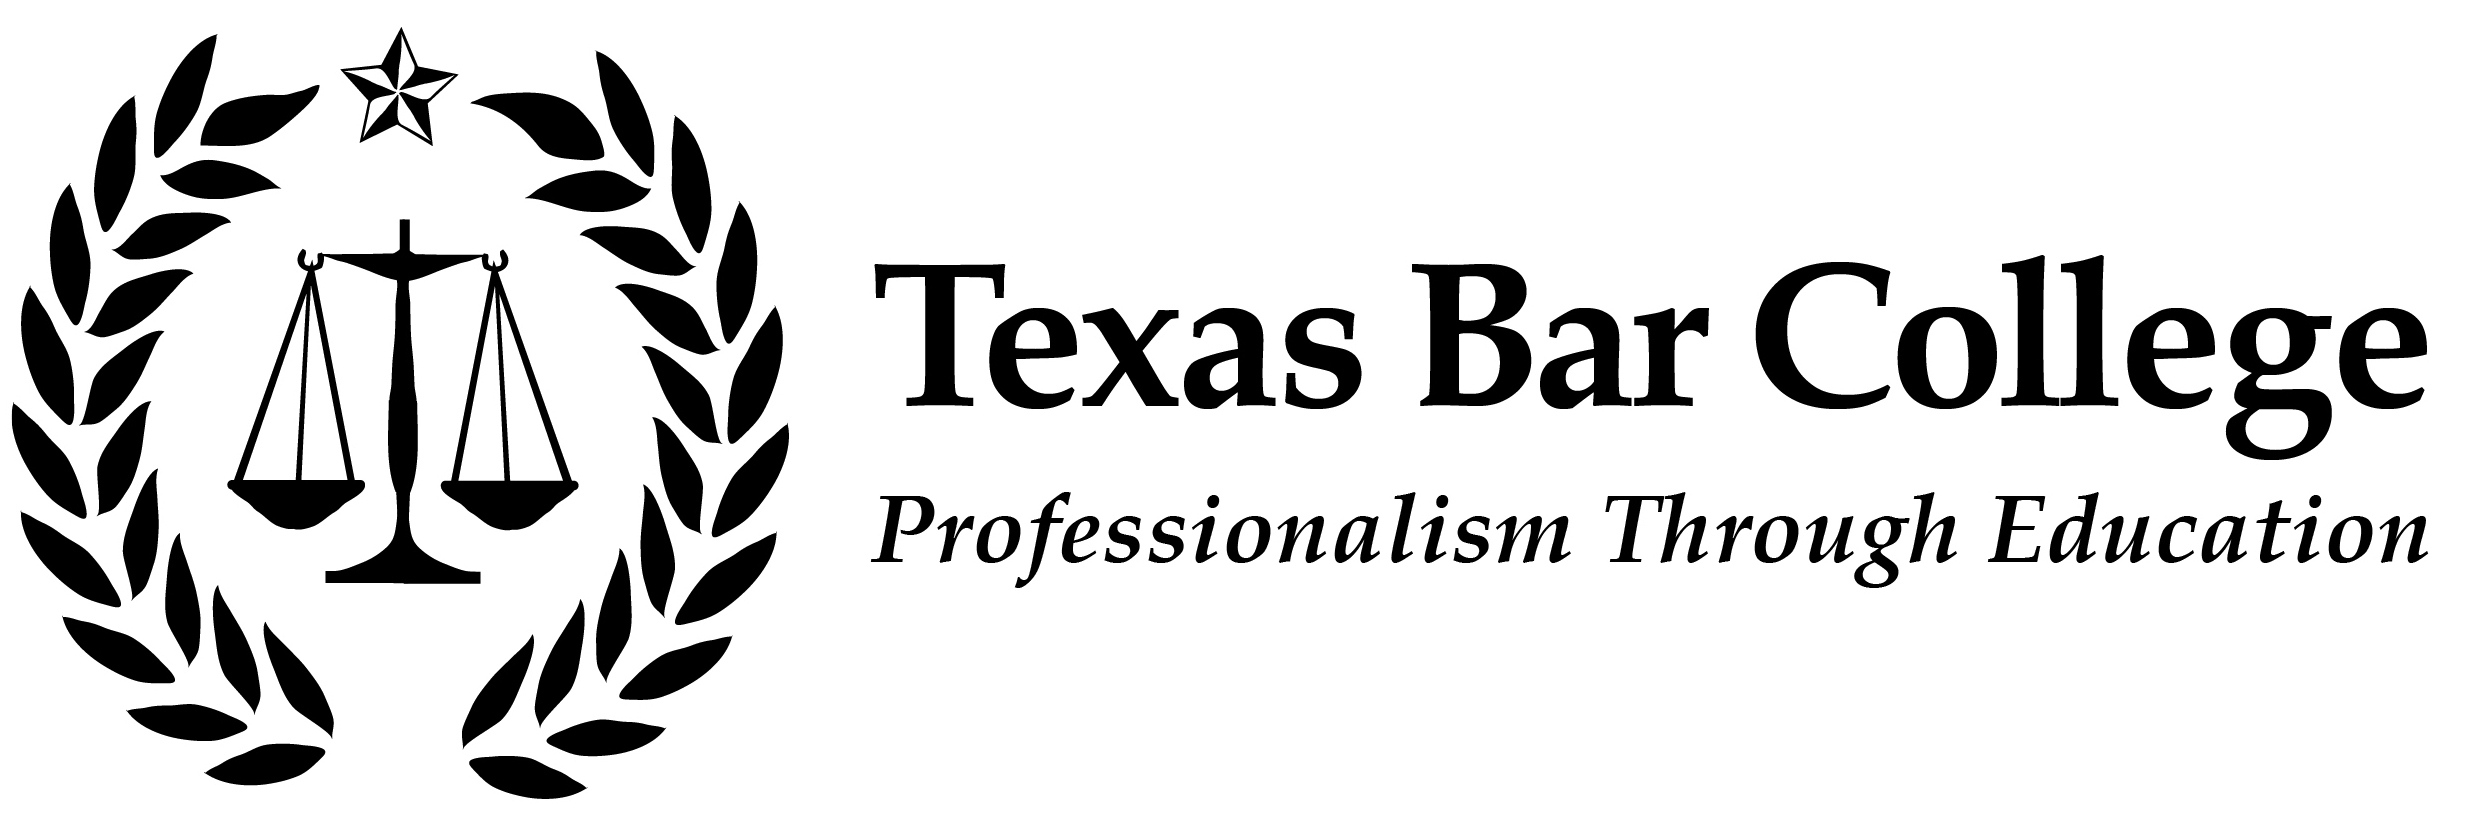 Texas Bar College Professionalism Through Education